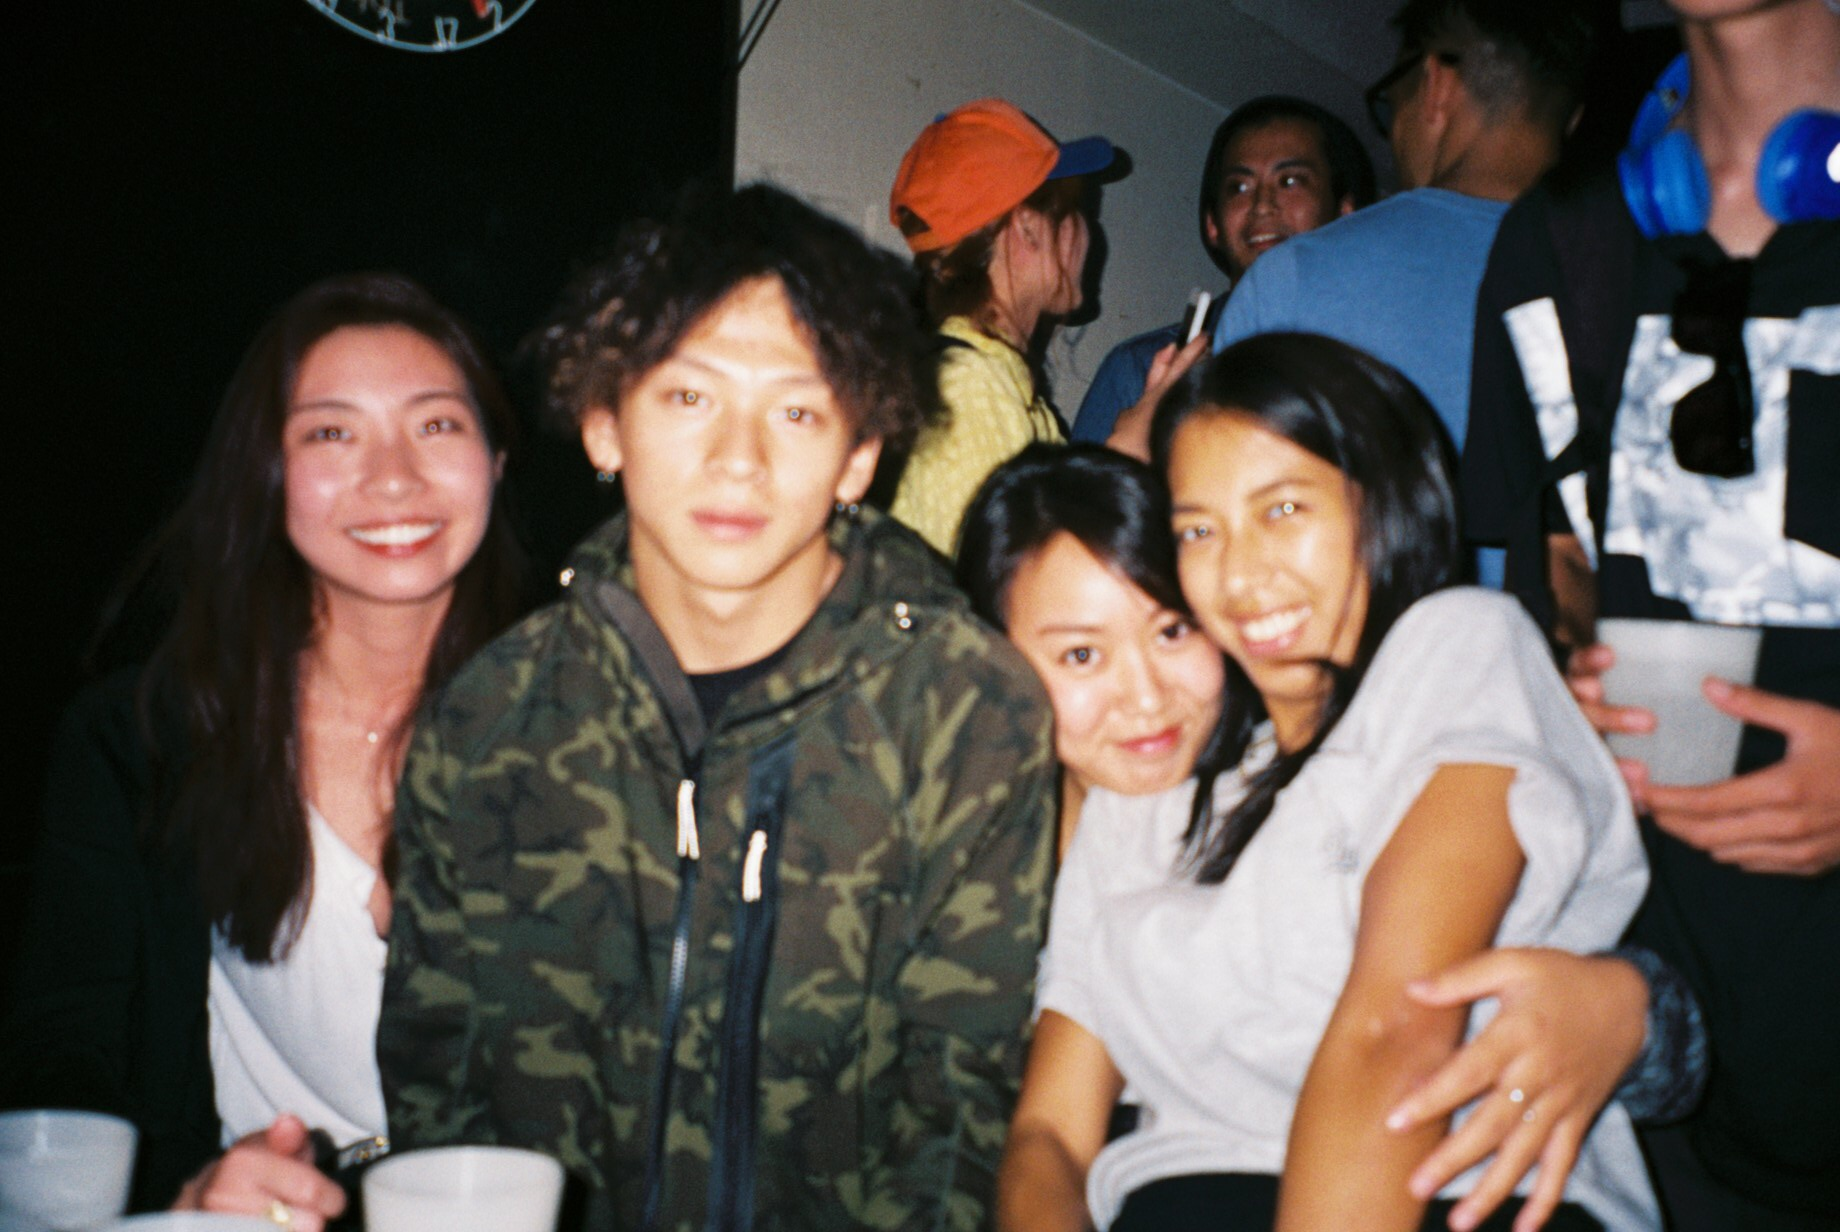 Young gun with the OGs haha